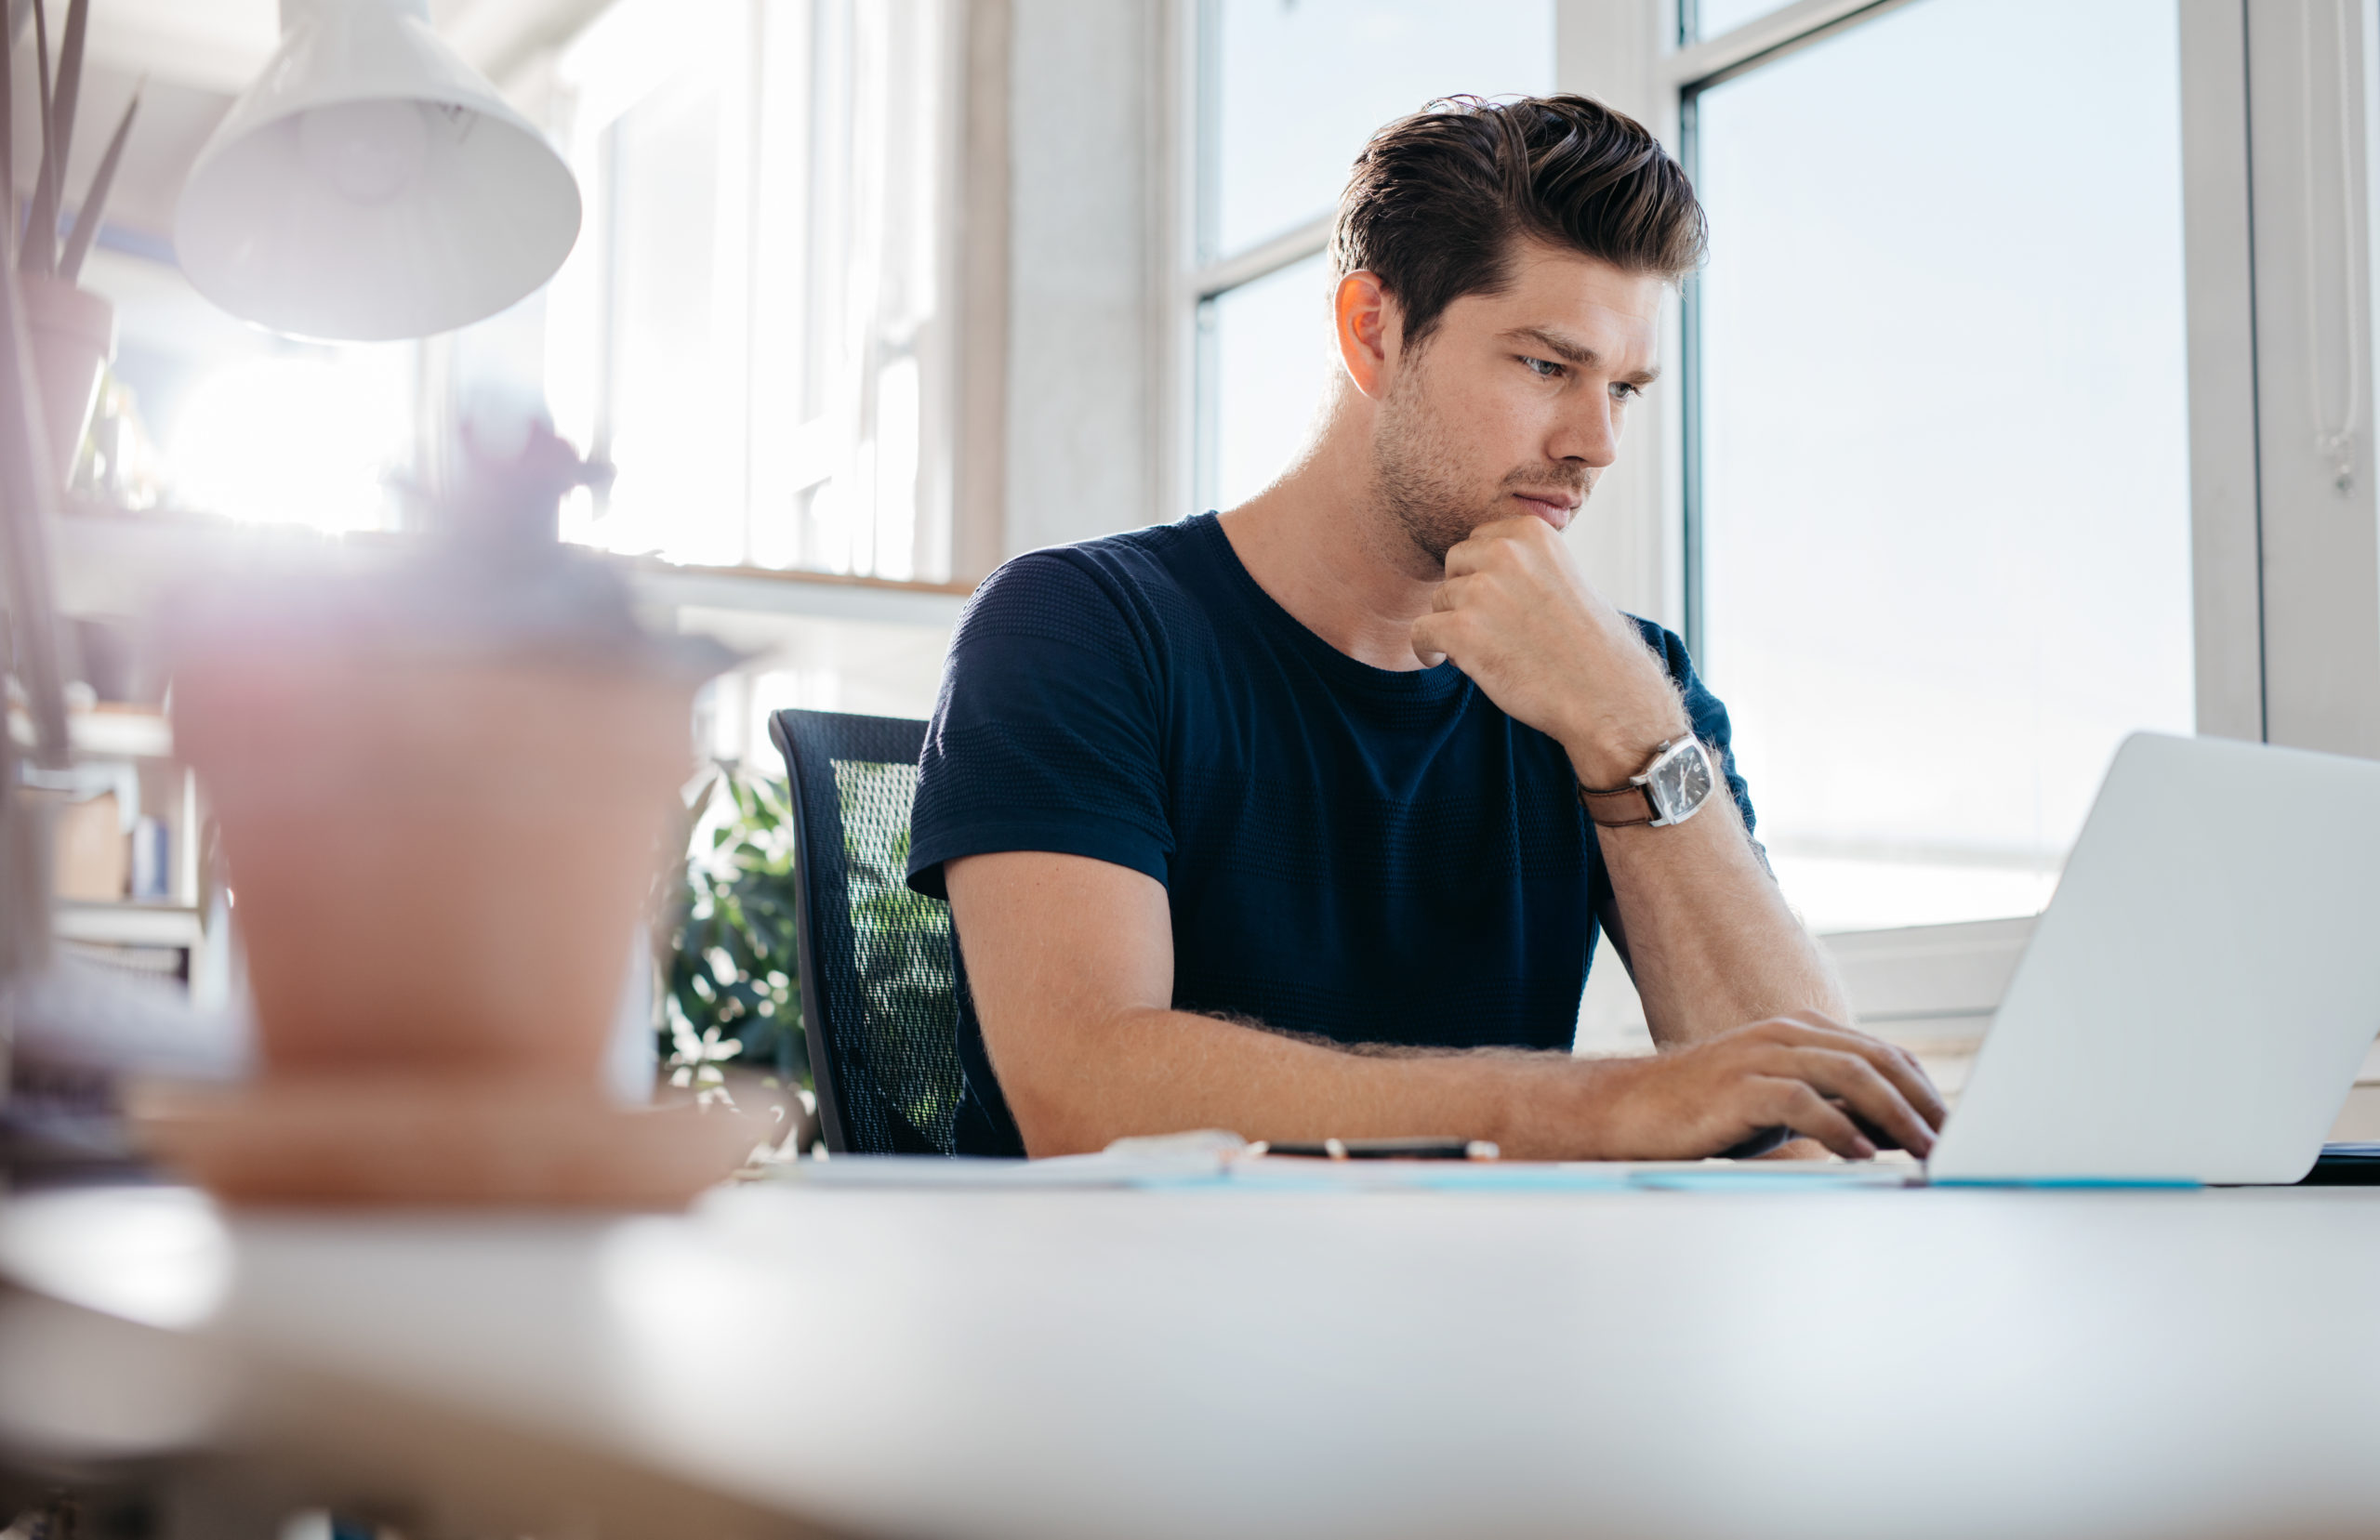 https://elements.envato.com/handsome-young-man-using-laptop-PEQGSFR